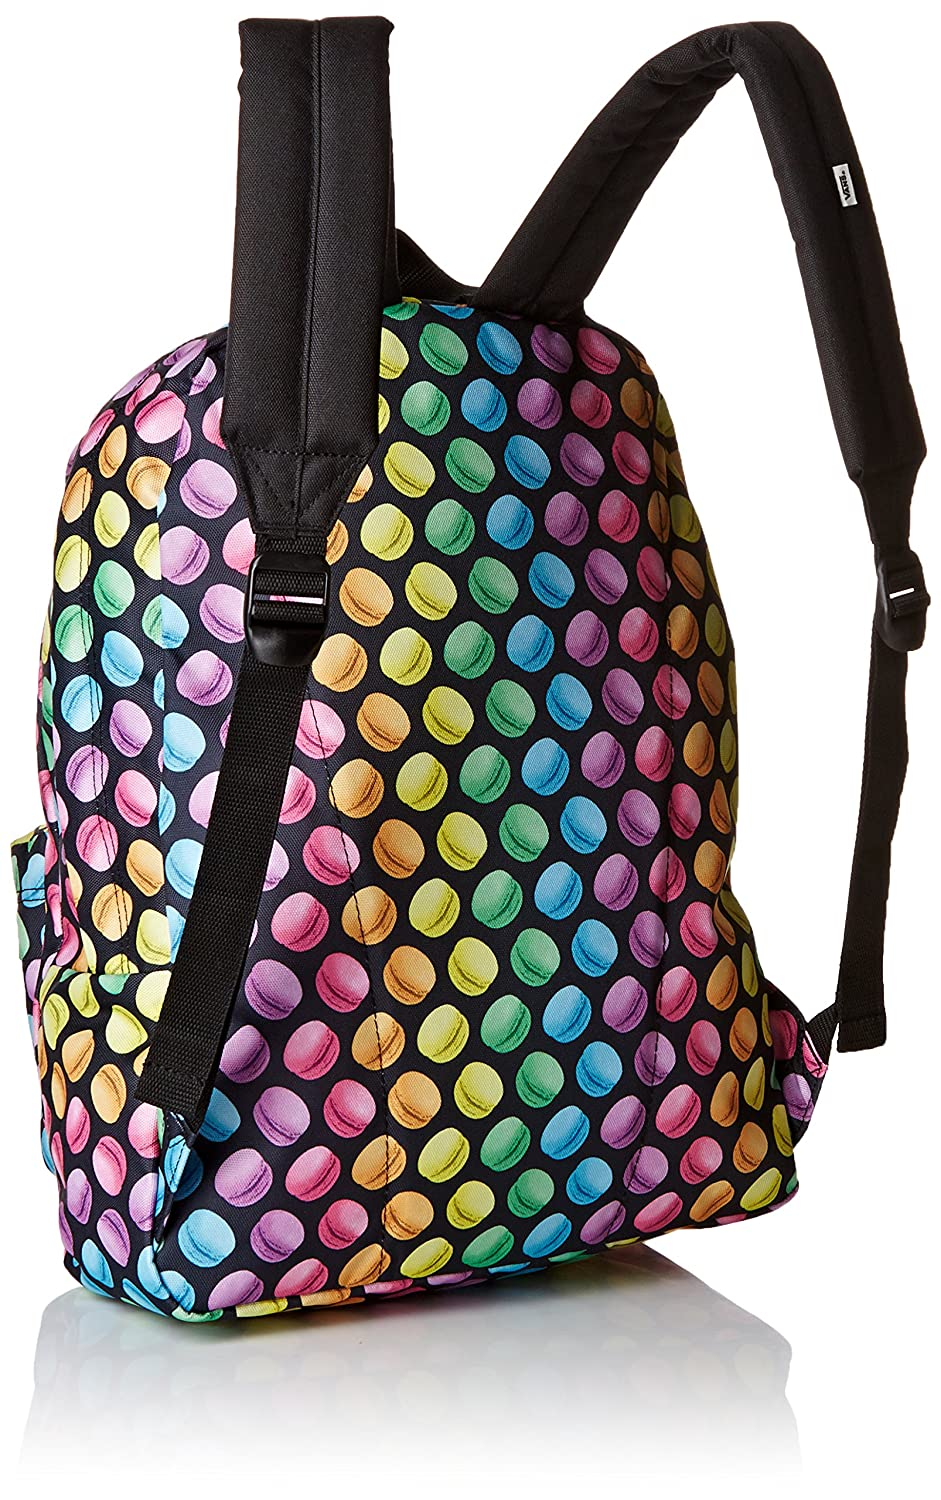 ff0ca4a79b Vans Realm, Women's Backpack, Multicolor (late Night/black/macaroons), One  Size: Amazon.co.uk: Luggage